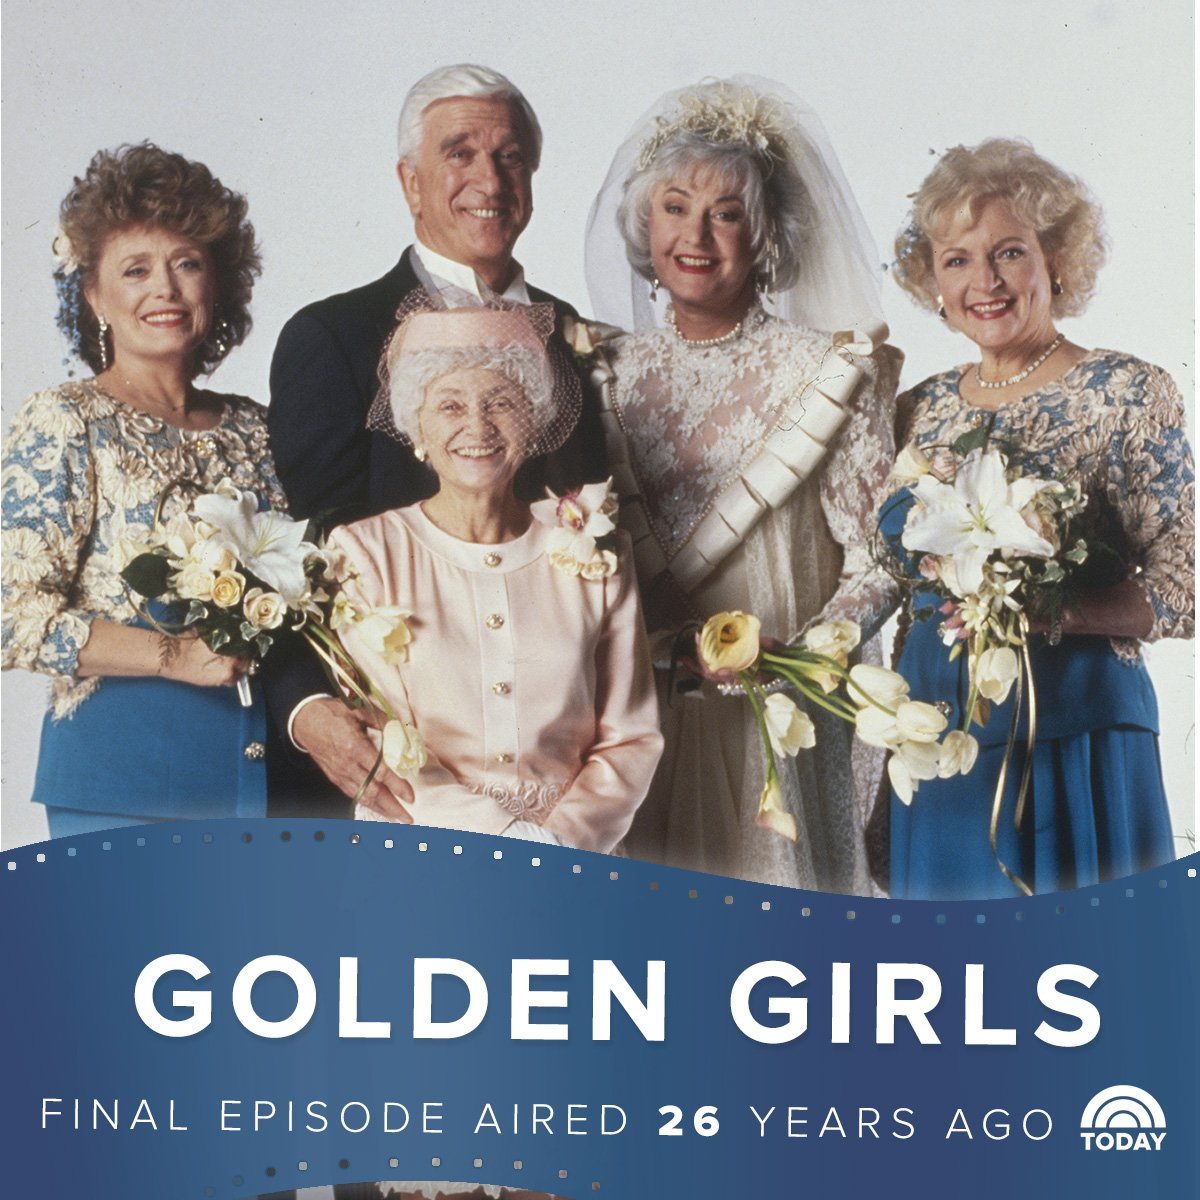 The #GoldenGirls finale aired on this day in 1992!